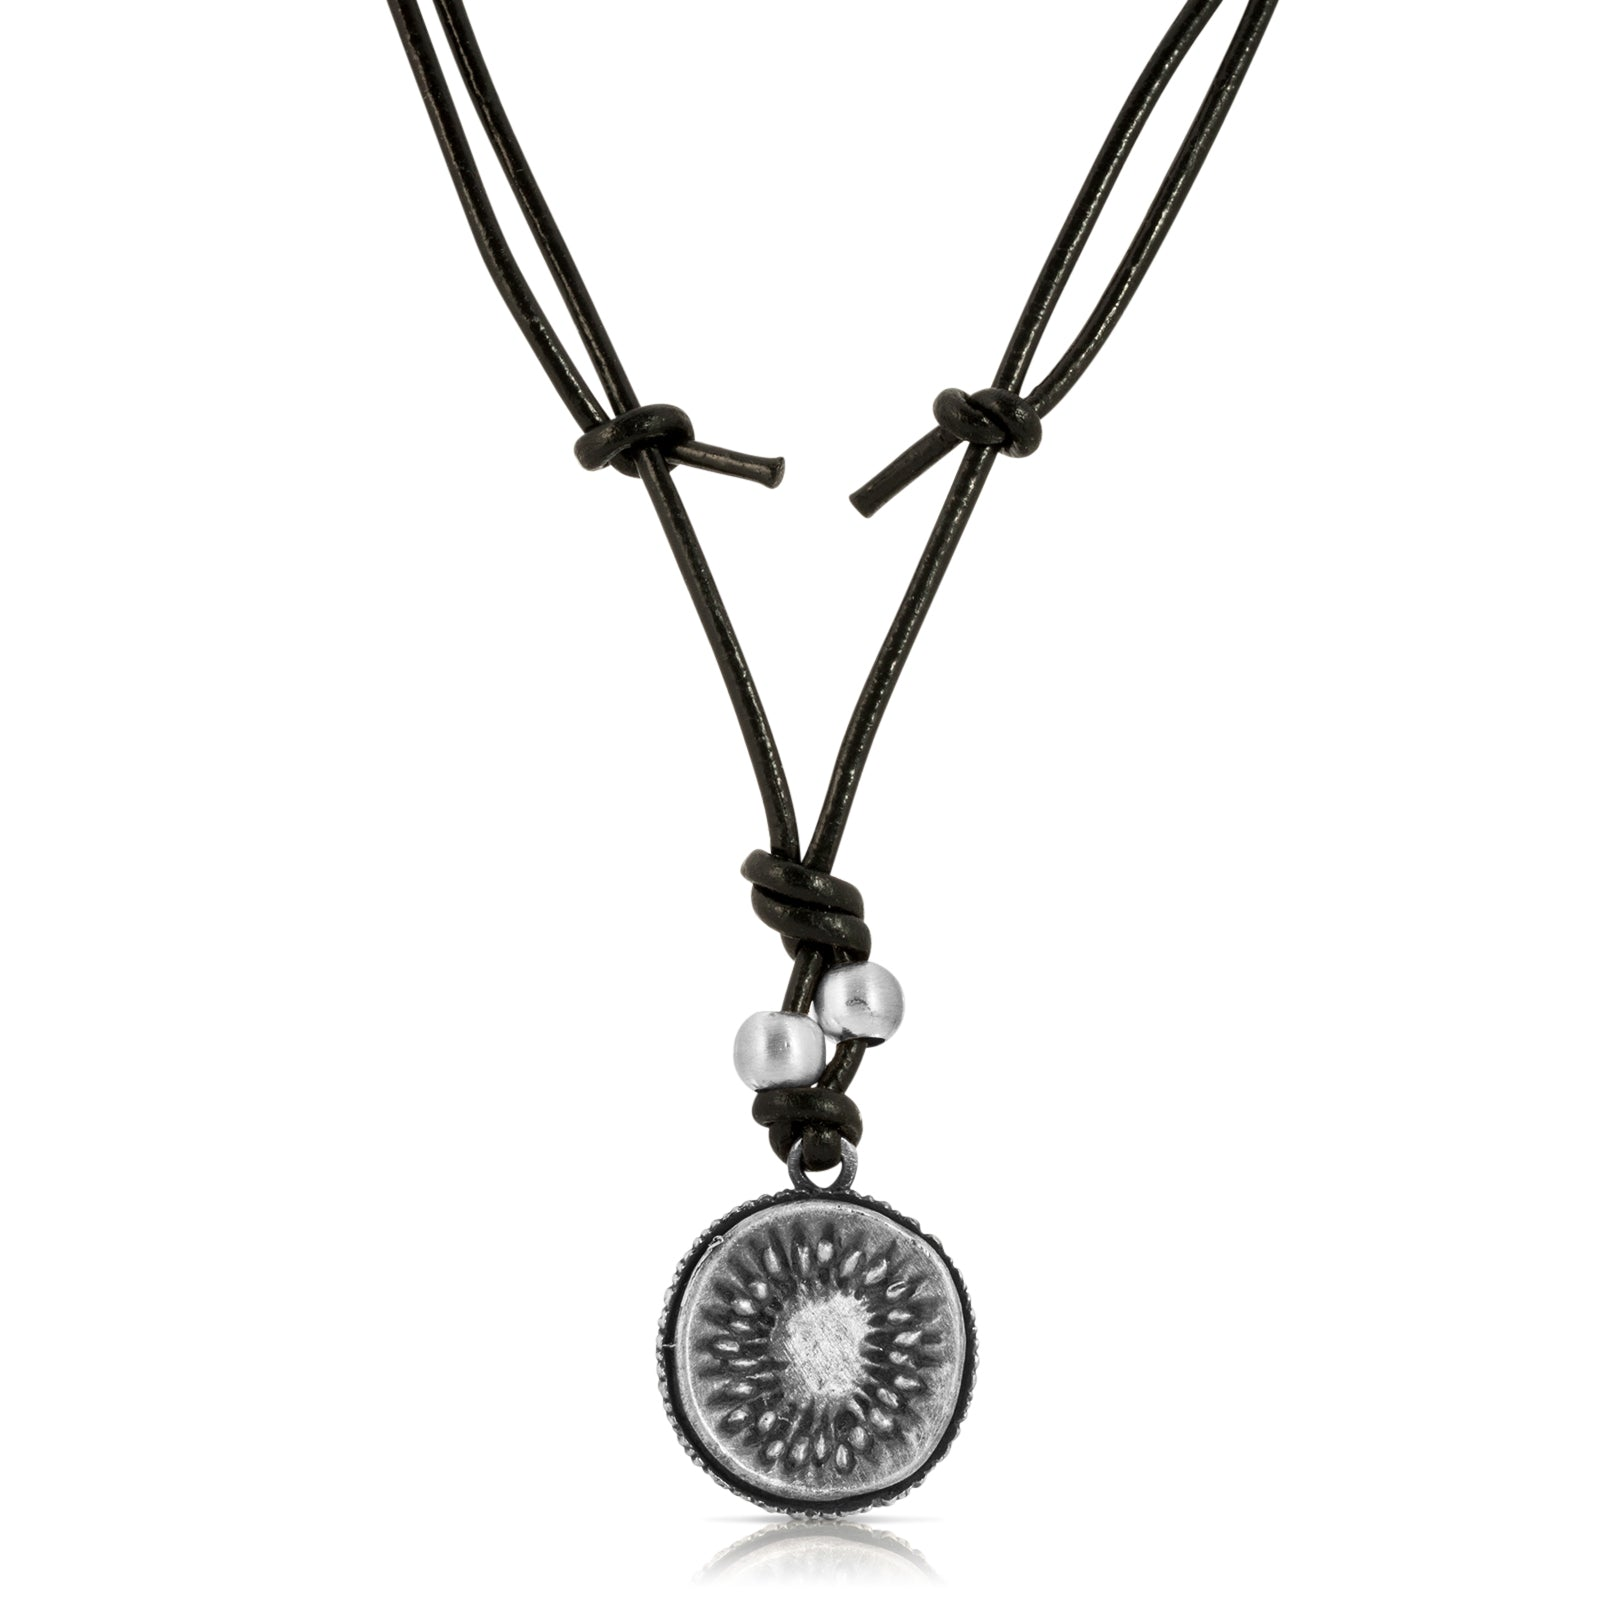 Kiwi Leather Necklace - The W Brothers